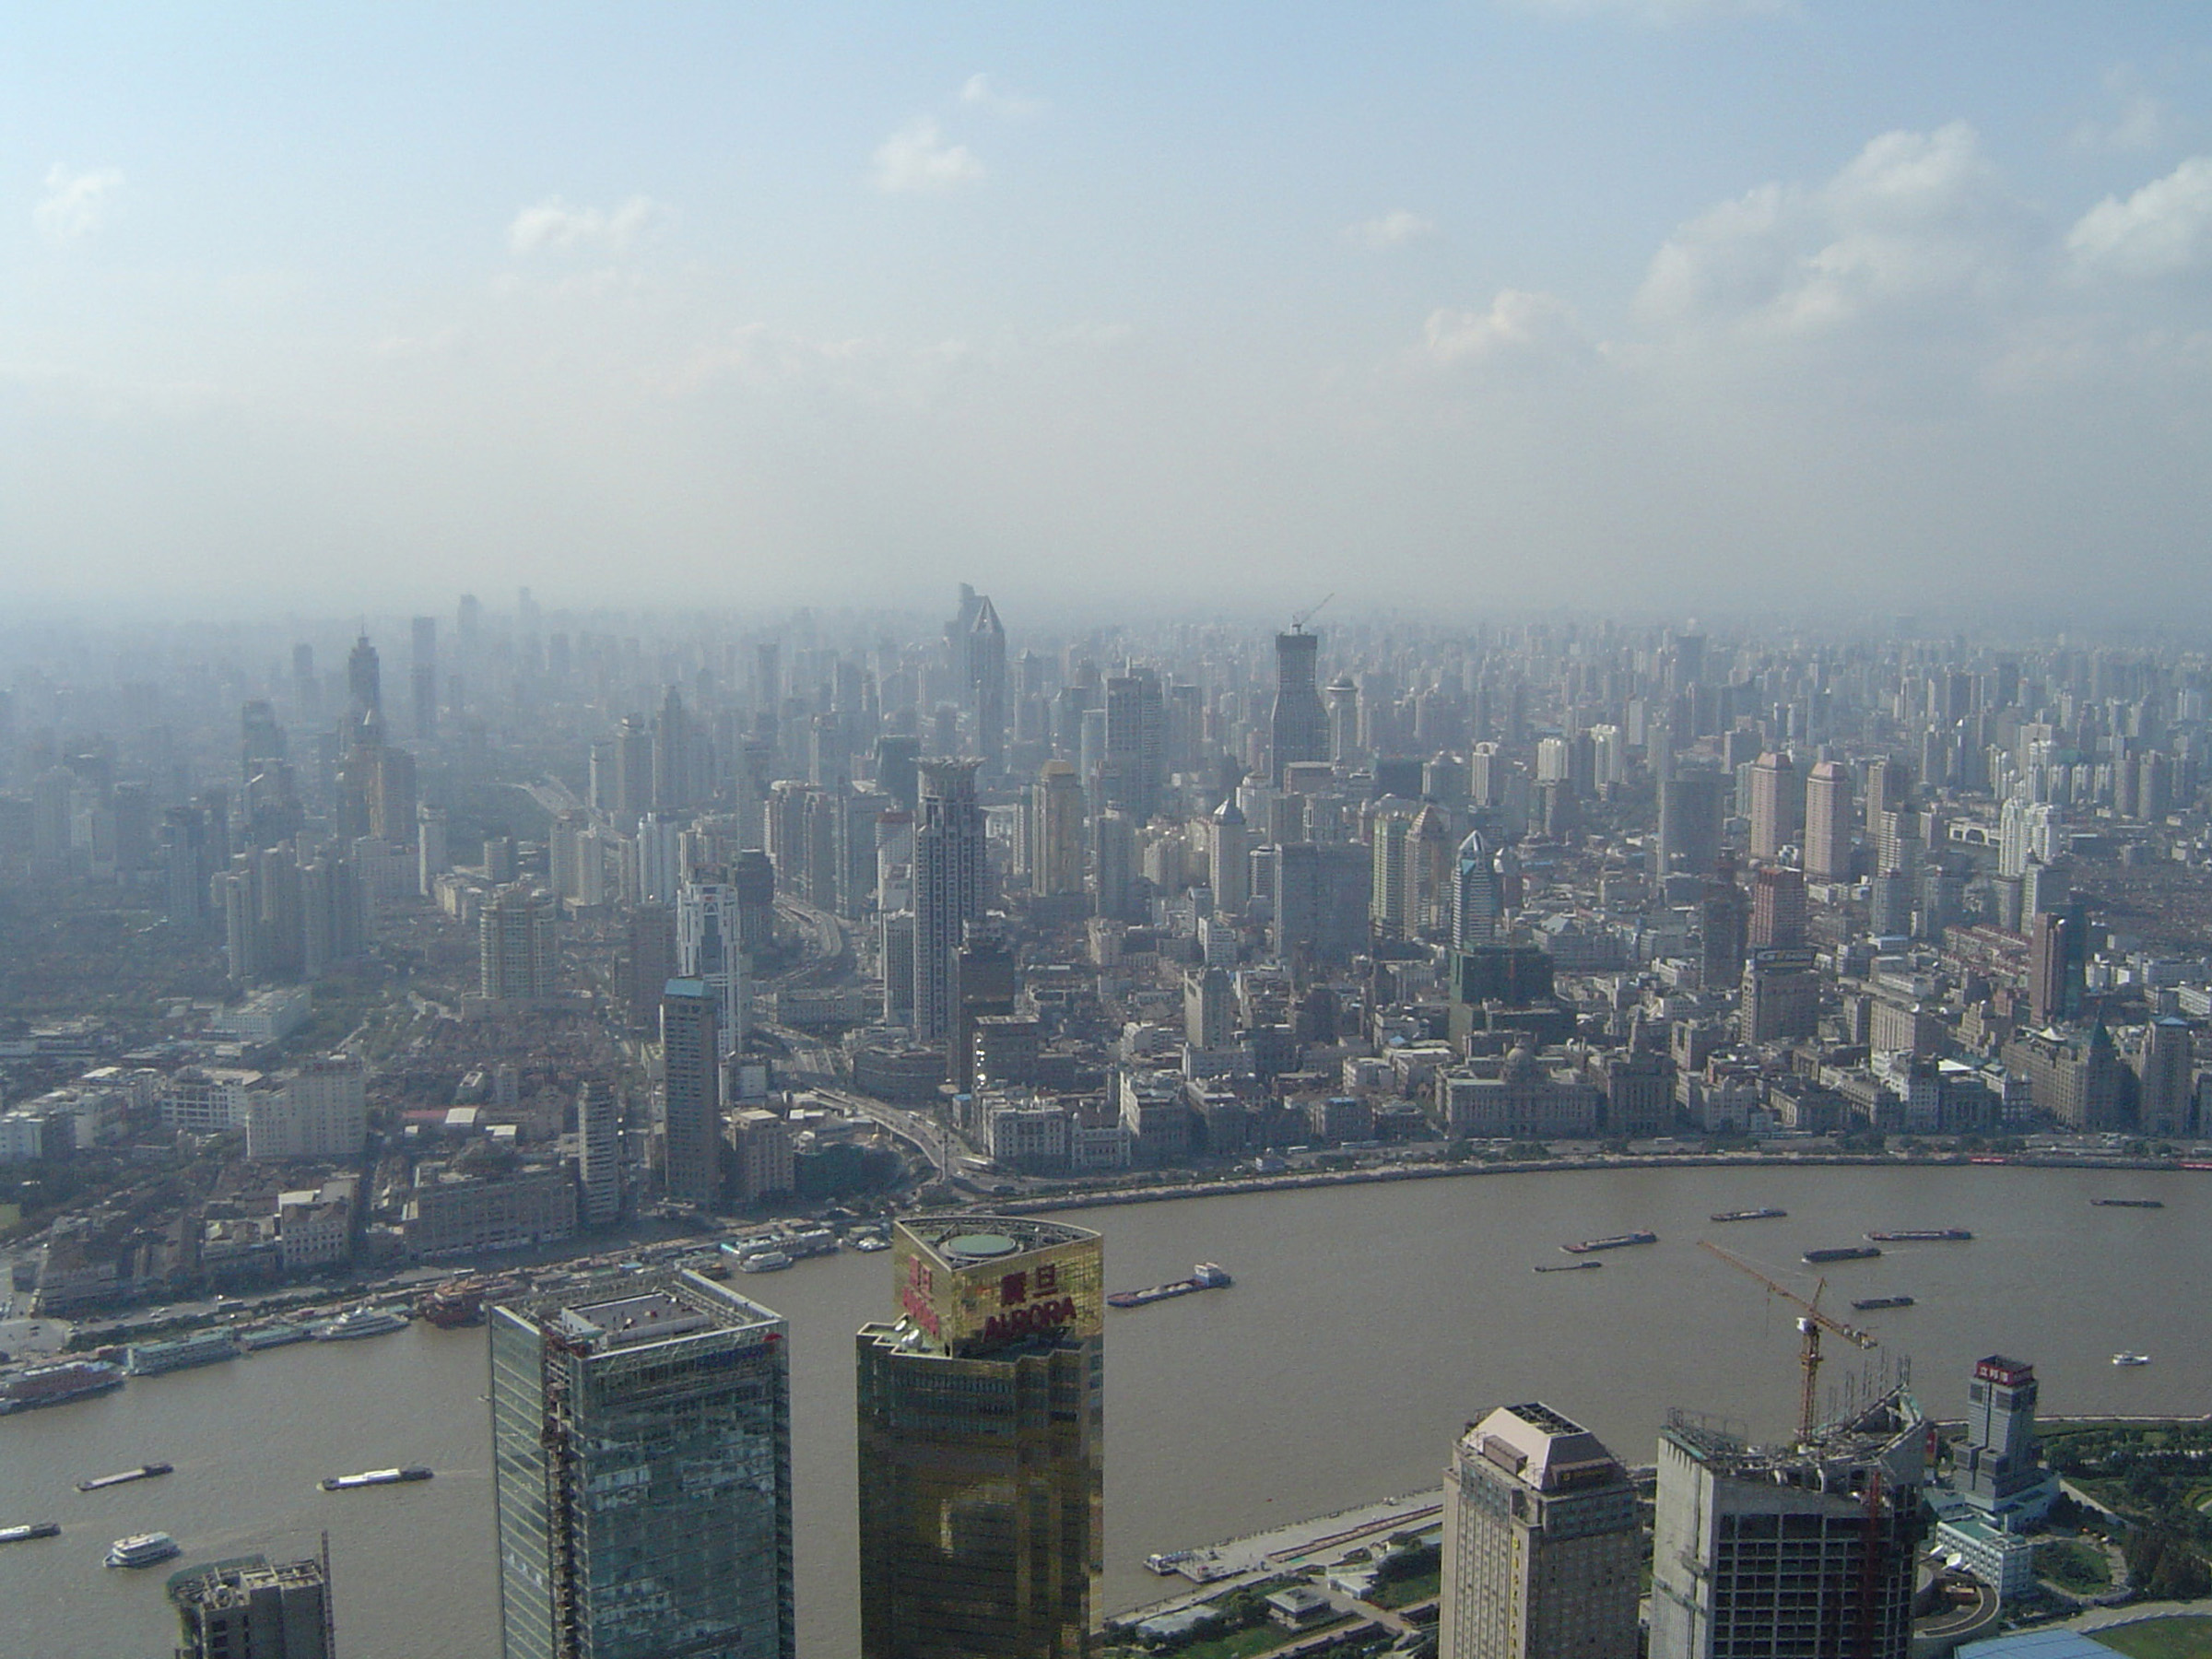 Aerial City View of China with Huge River and Assorted Buildings View. Emphasizing Obvious Air Pollution.